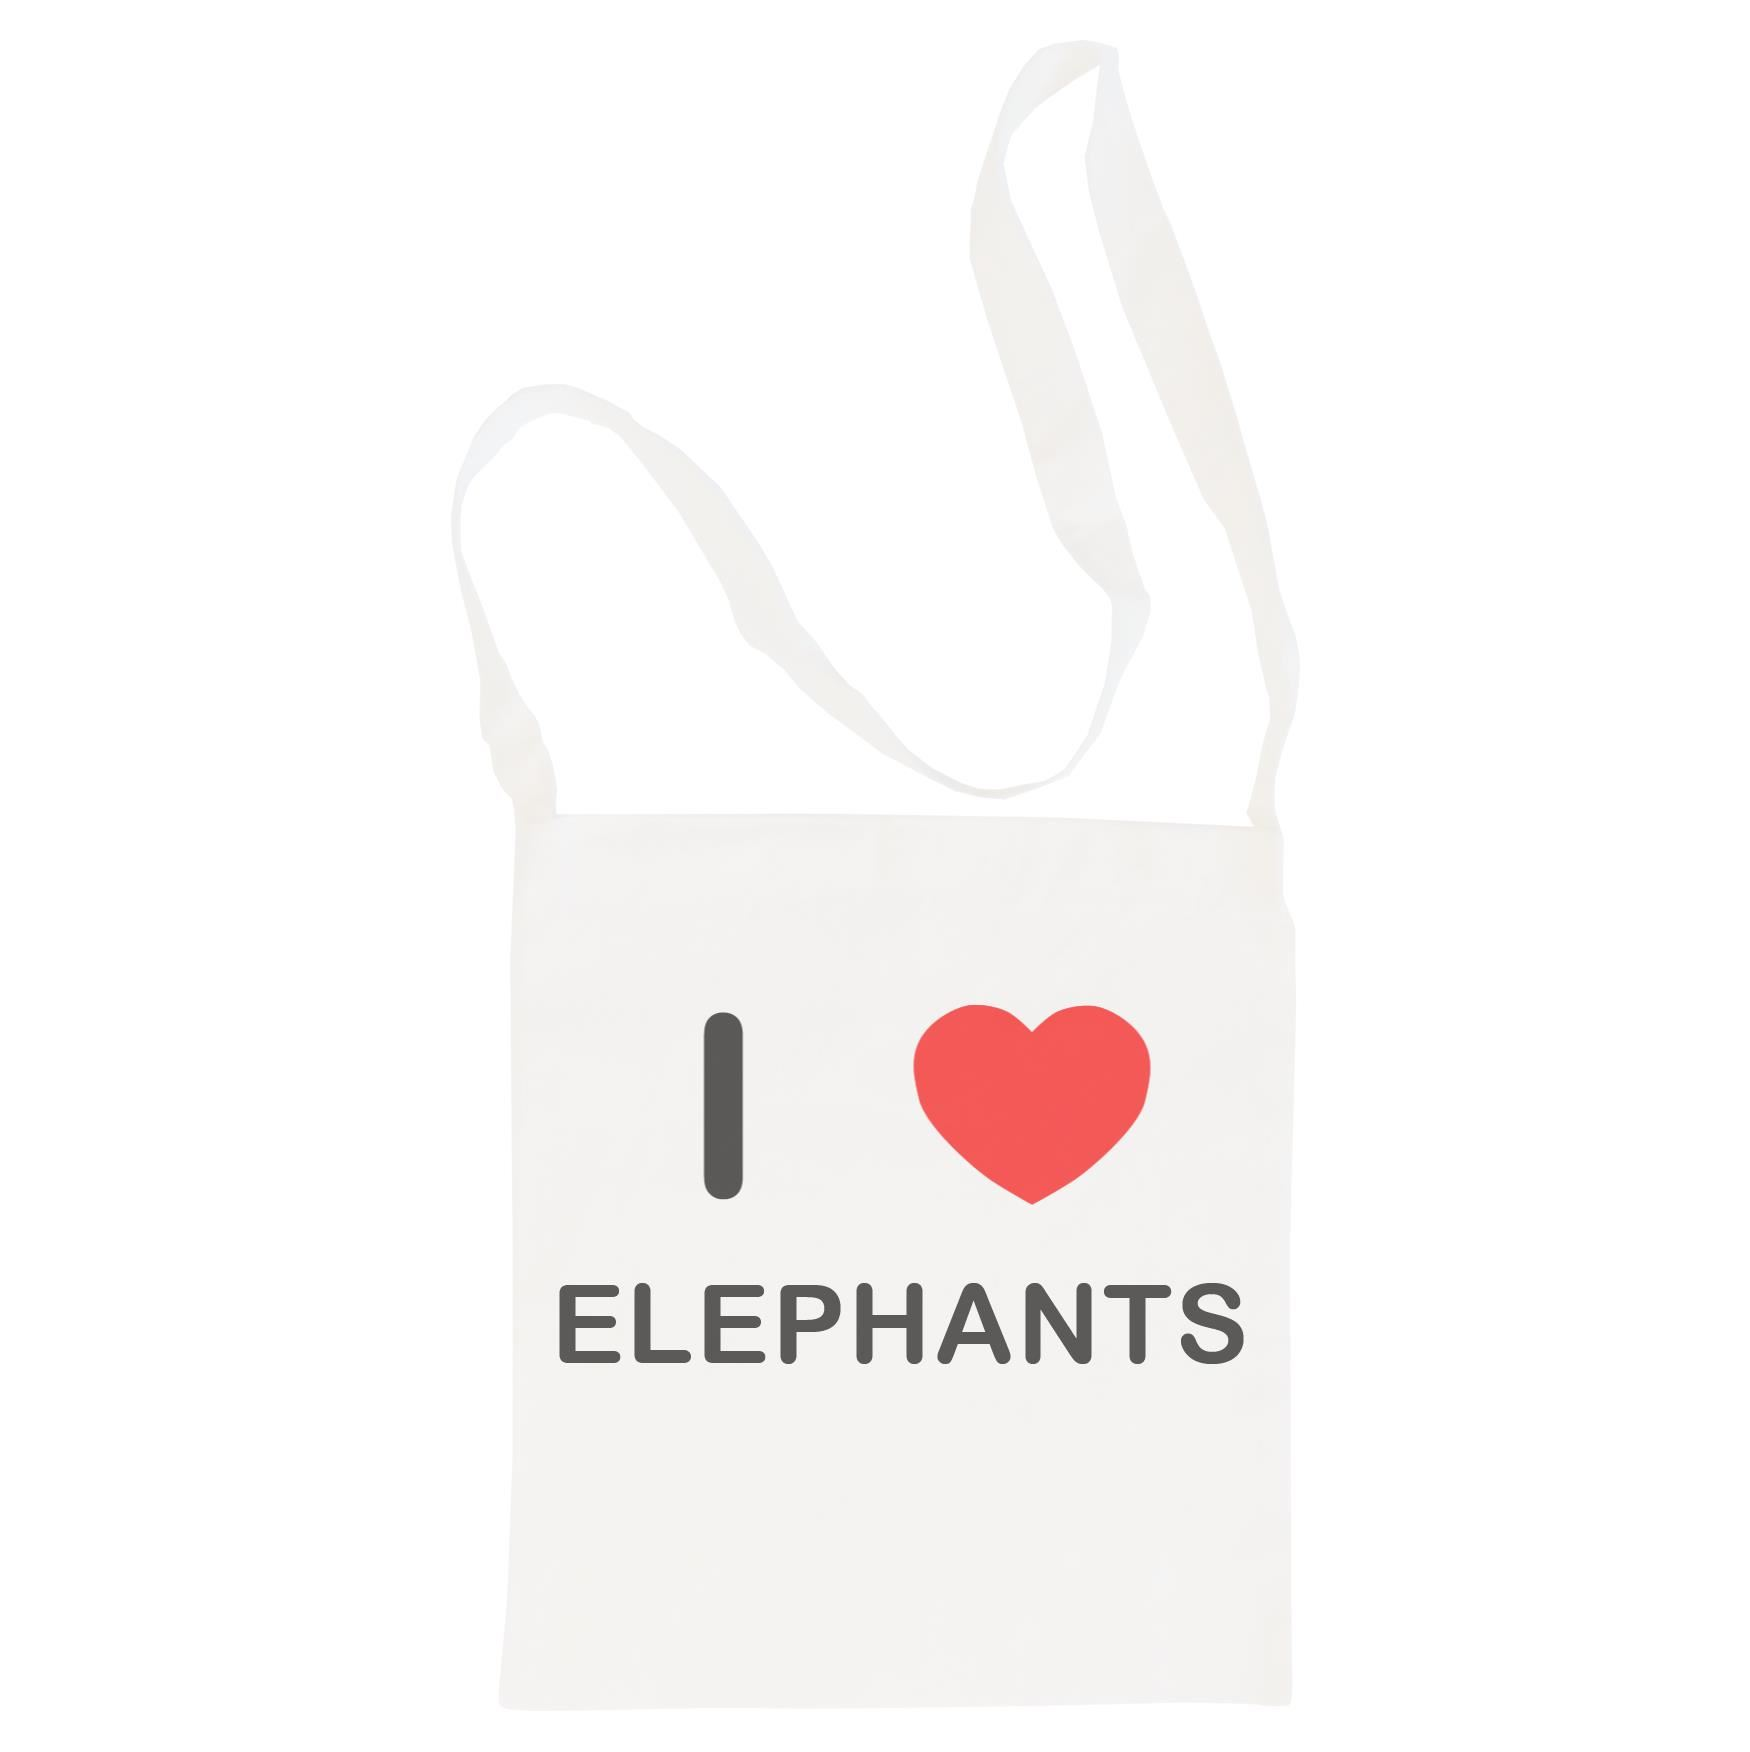 I Love Elephants - Cotton Bag | Size choice Tote, Shopper or Sling